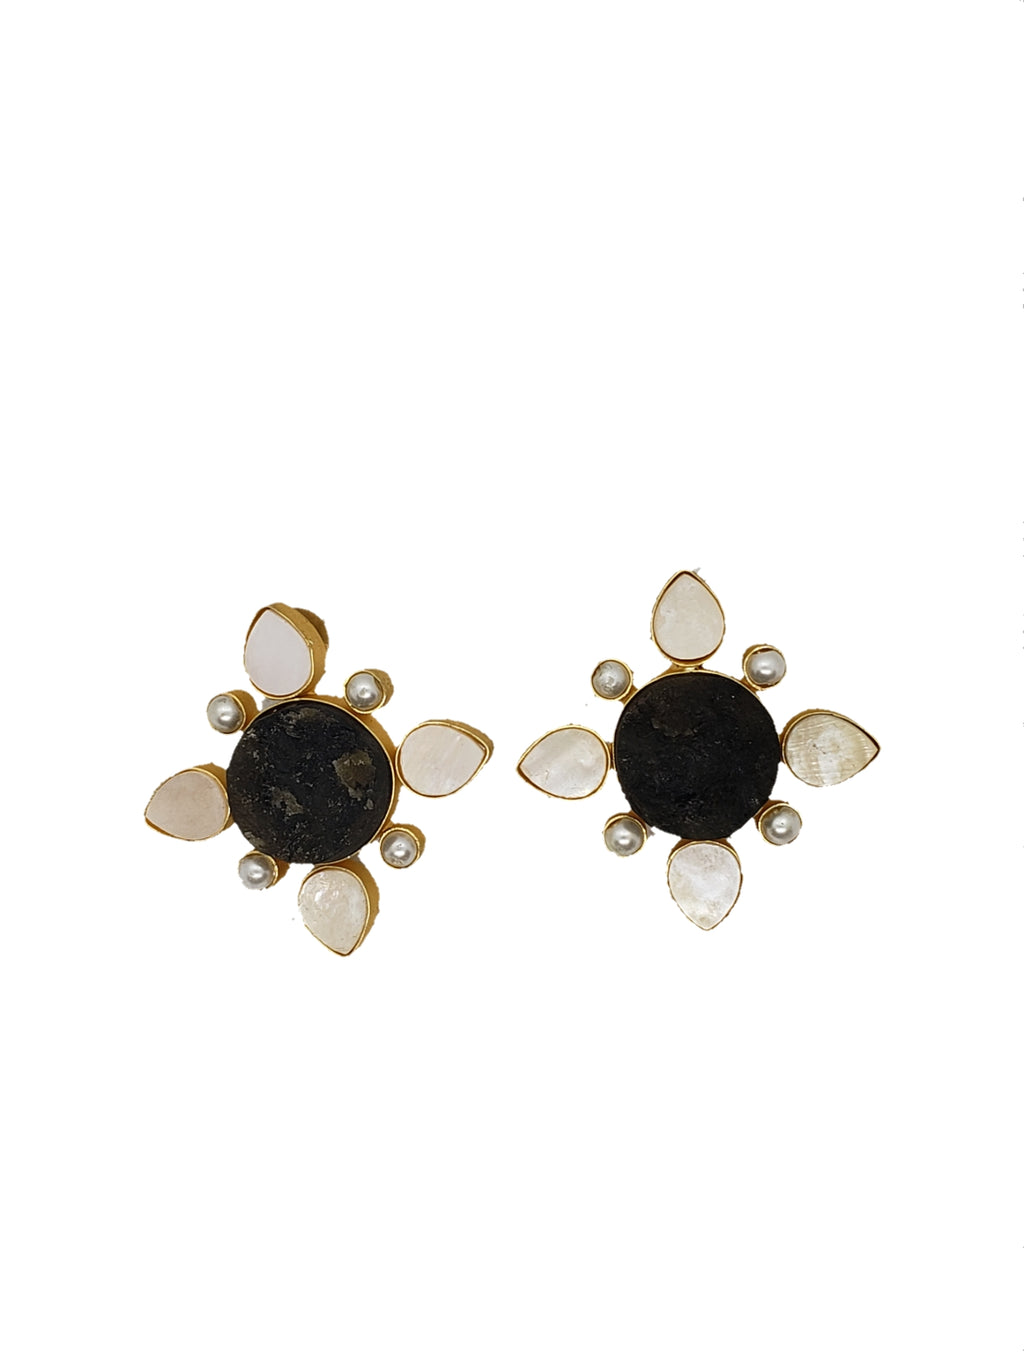 Obsidian and mother of pearl Stud Earrings - The Bauble Shop